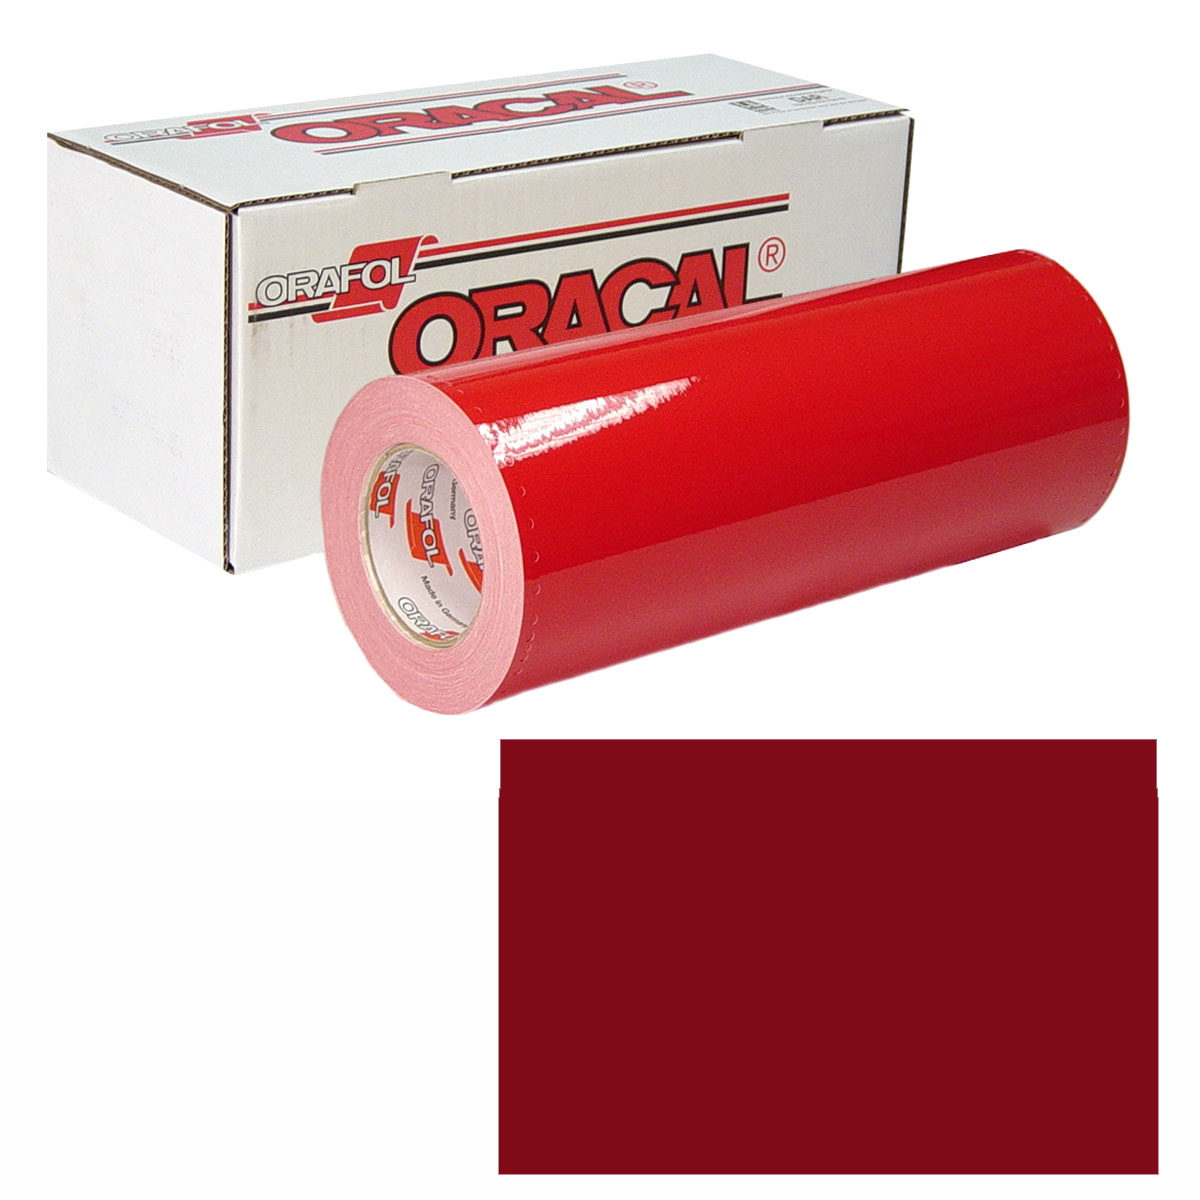 ORACAL 951M Unp 48in X 50yd 367 Red Metallic